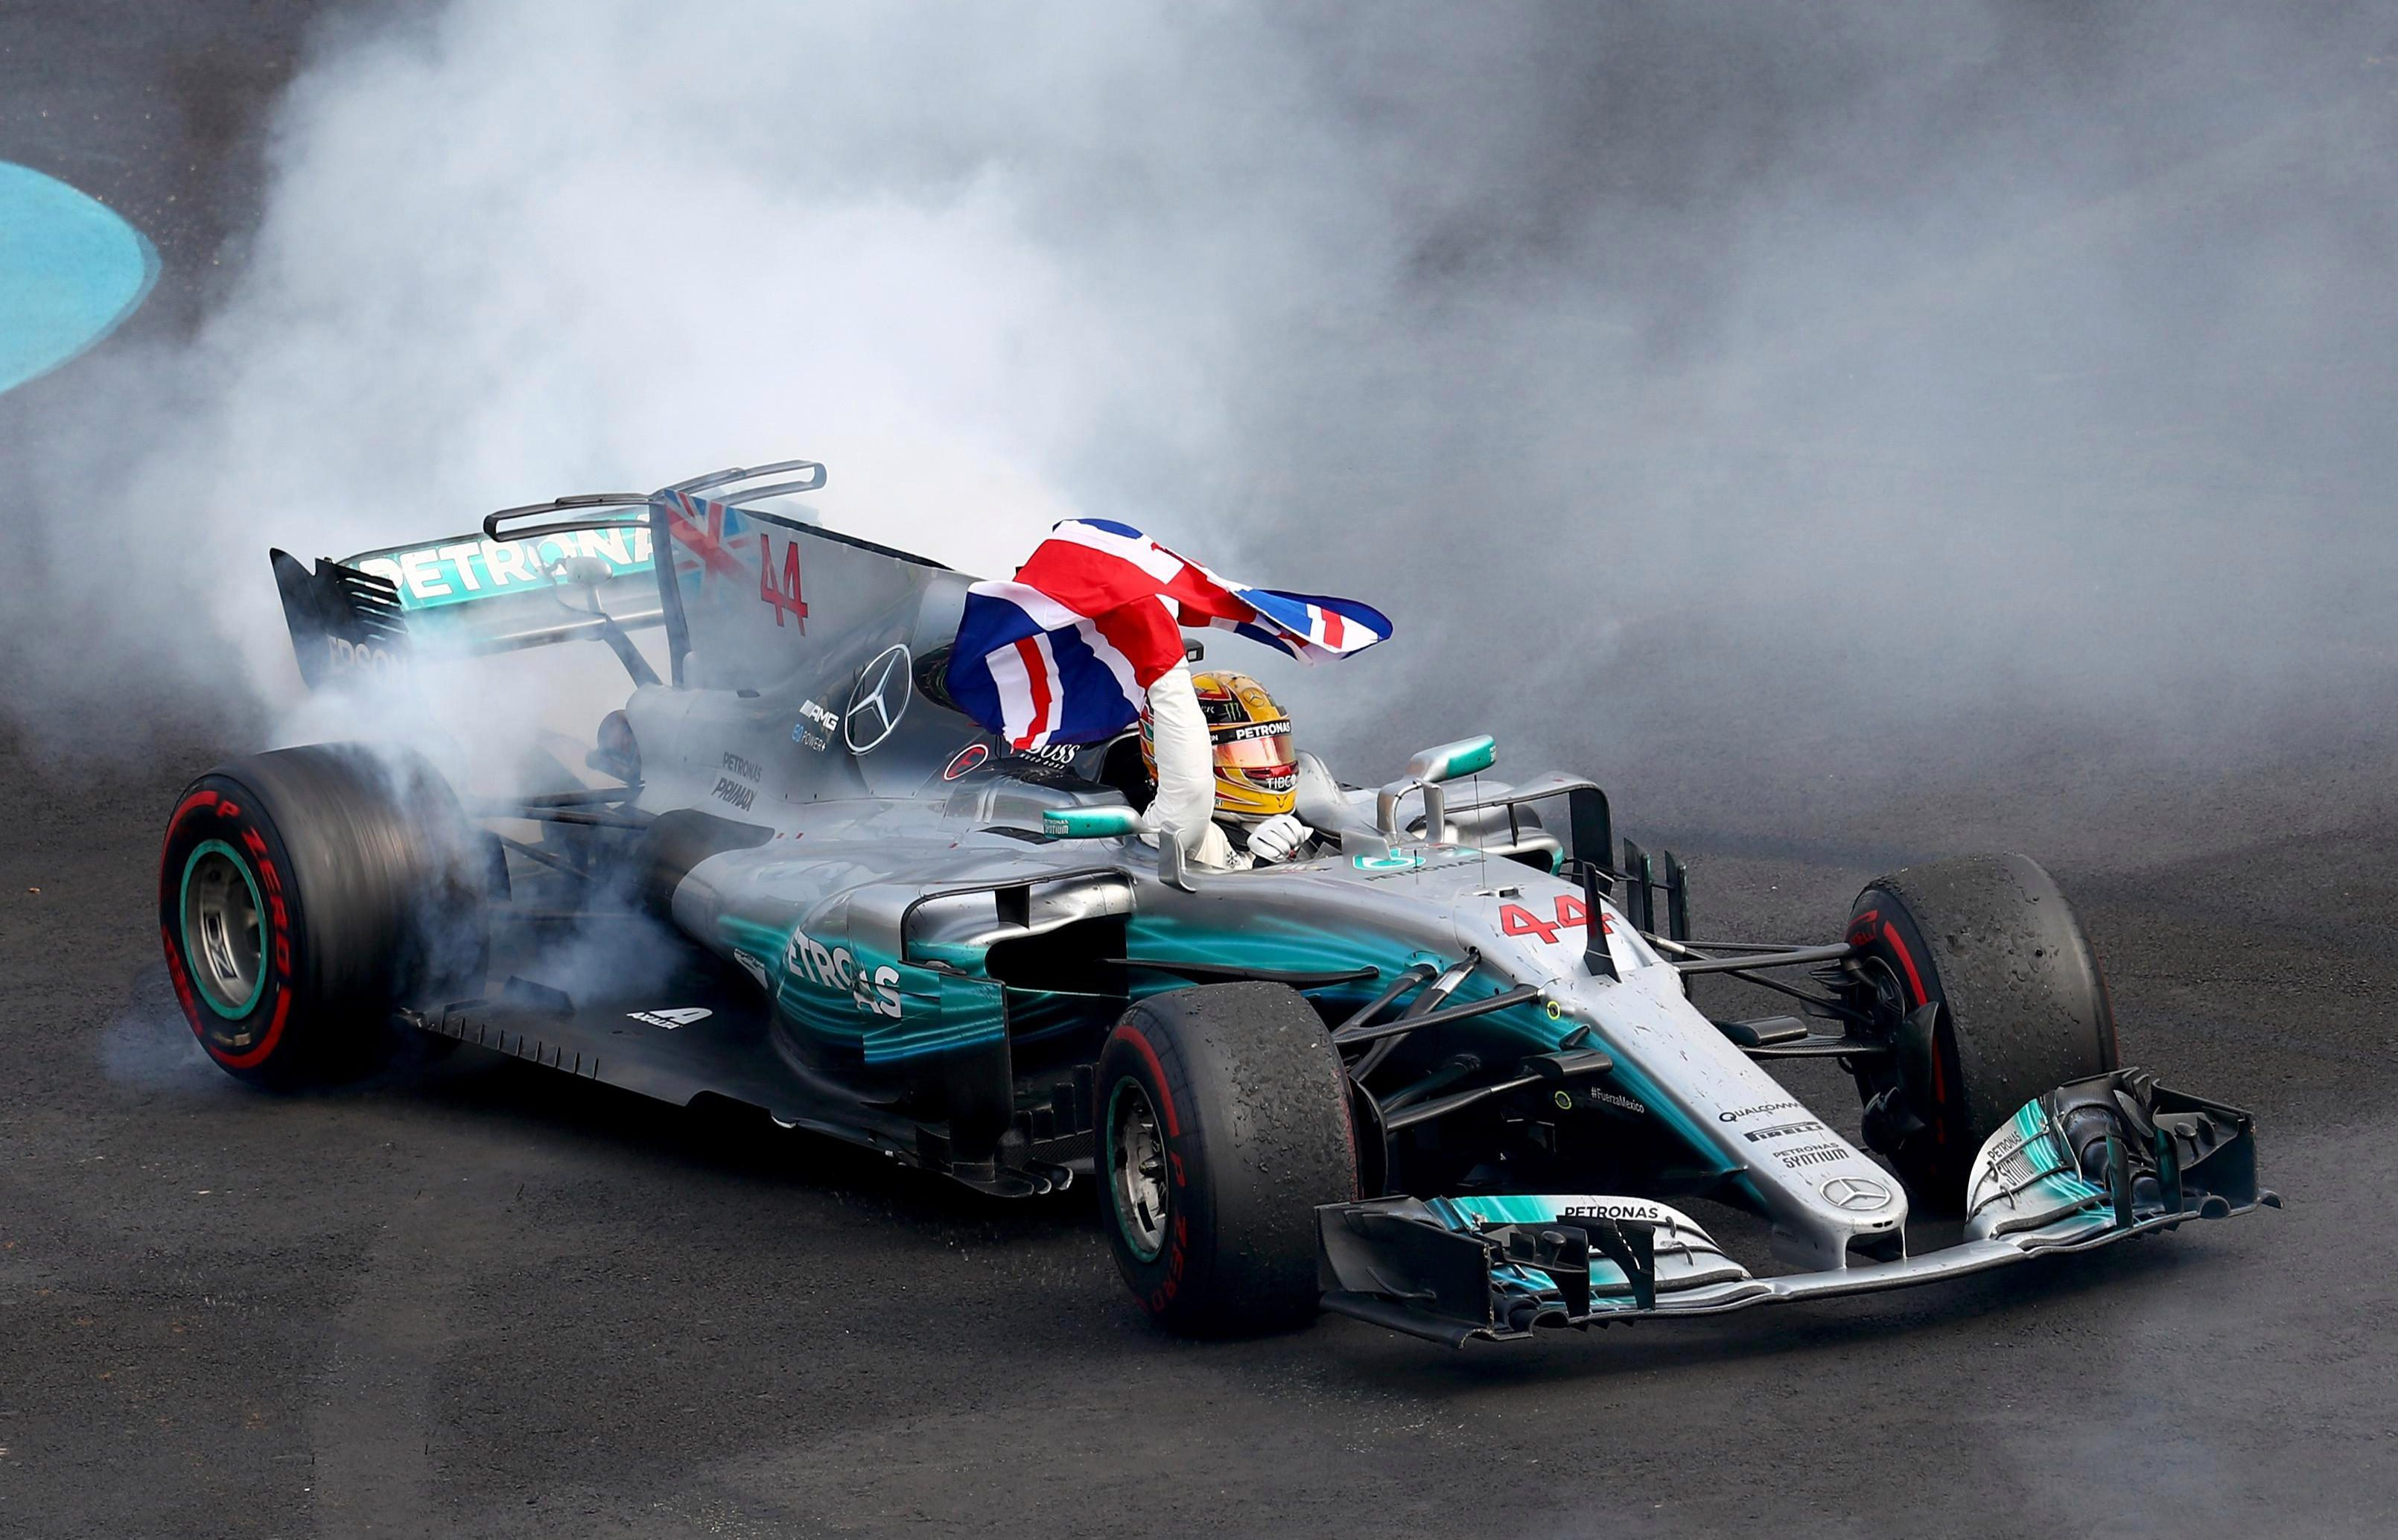 Hamilton did his trademark donuts after sealing victory